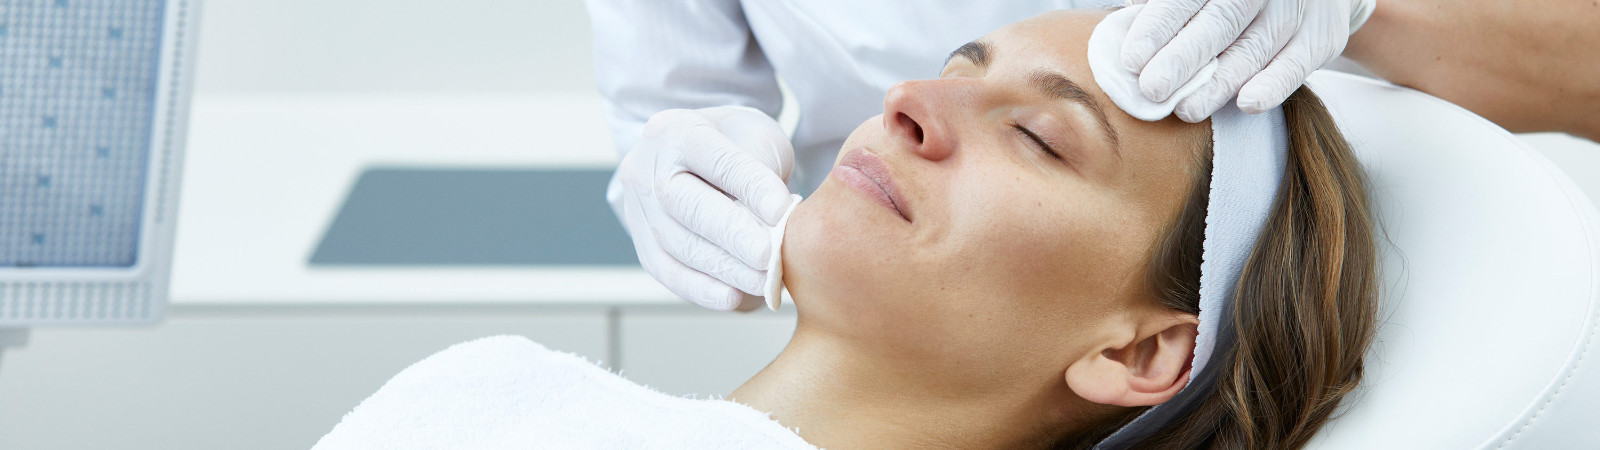 Kleresca Rejuvenation Treatment